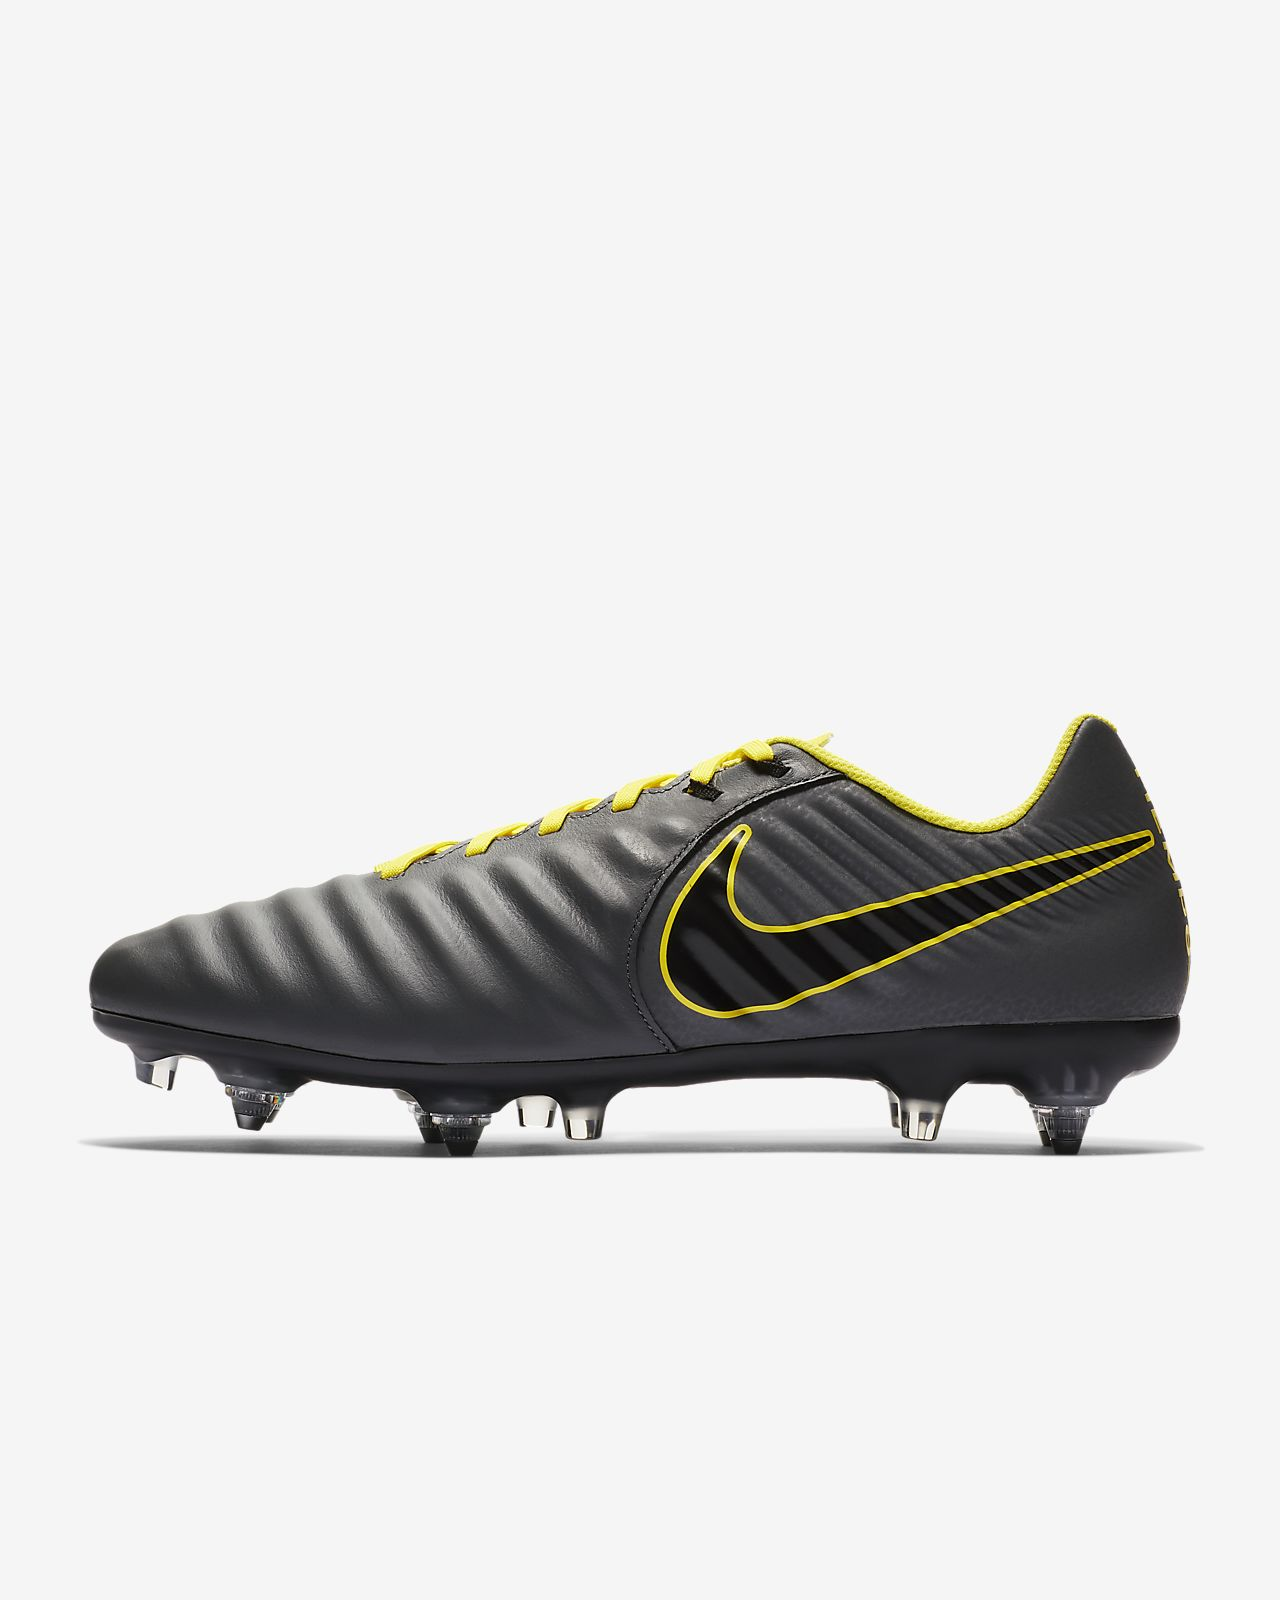 eae5e511e87 Nike Legend 7 Academy SG-Pro Anti-Clog Traction Soft-Ground Pro ...